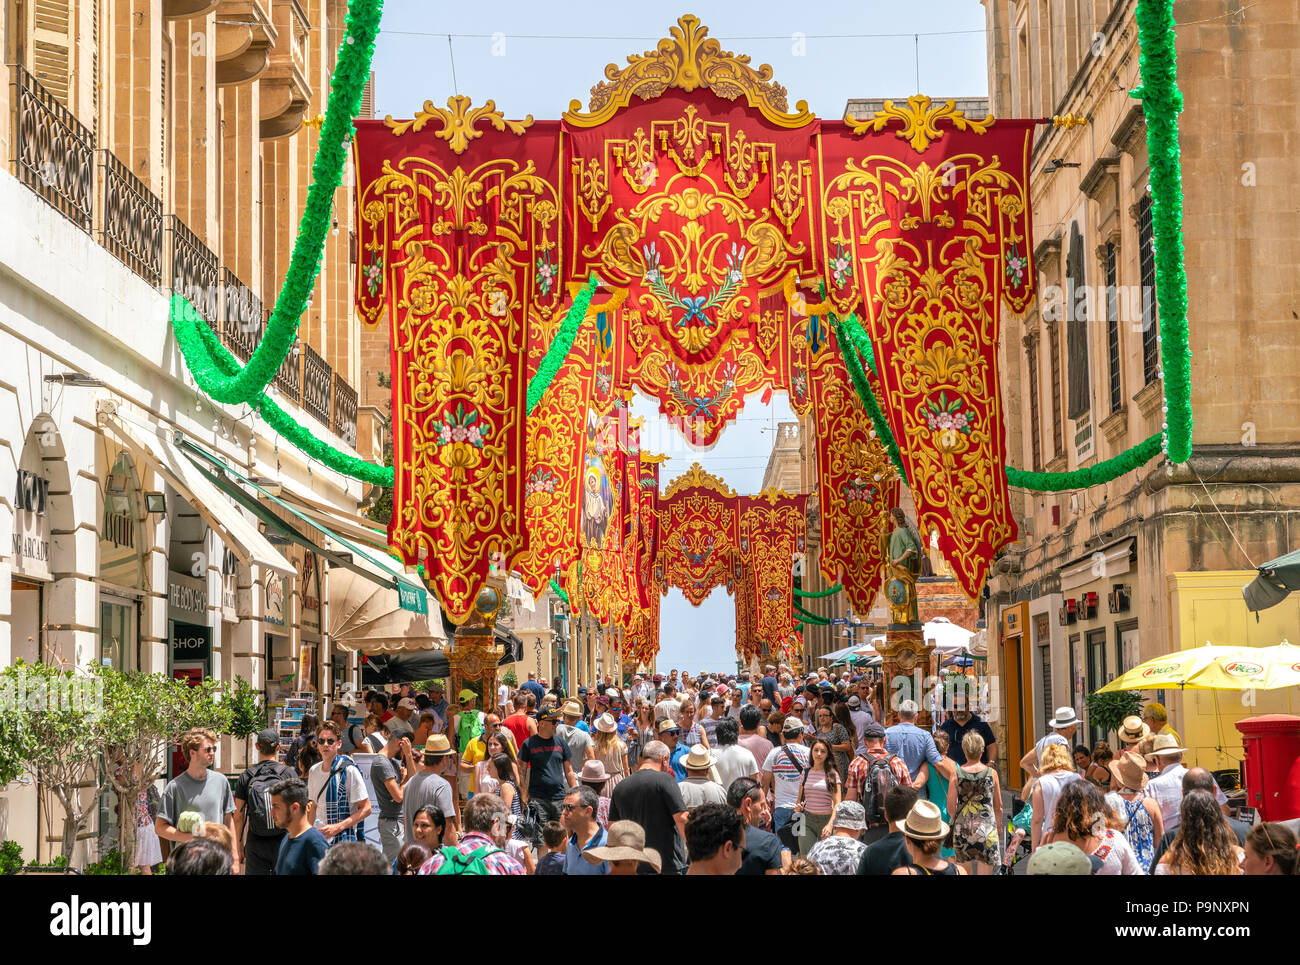 14 July 2018 - Valletta, Malta. Festively decorated the street with colourful banners for St Augustine Feast. People walking in the beautiful and busy old - Stock Image